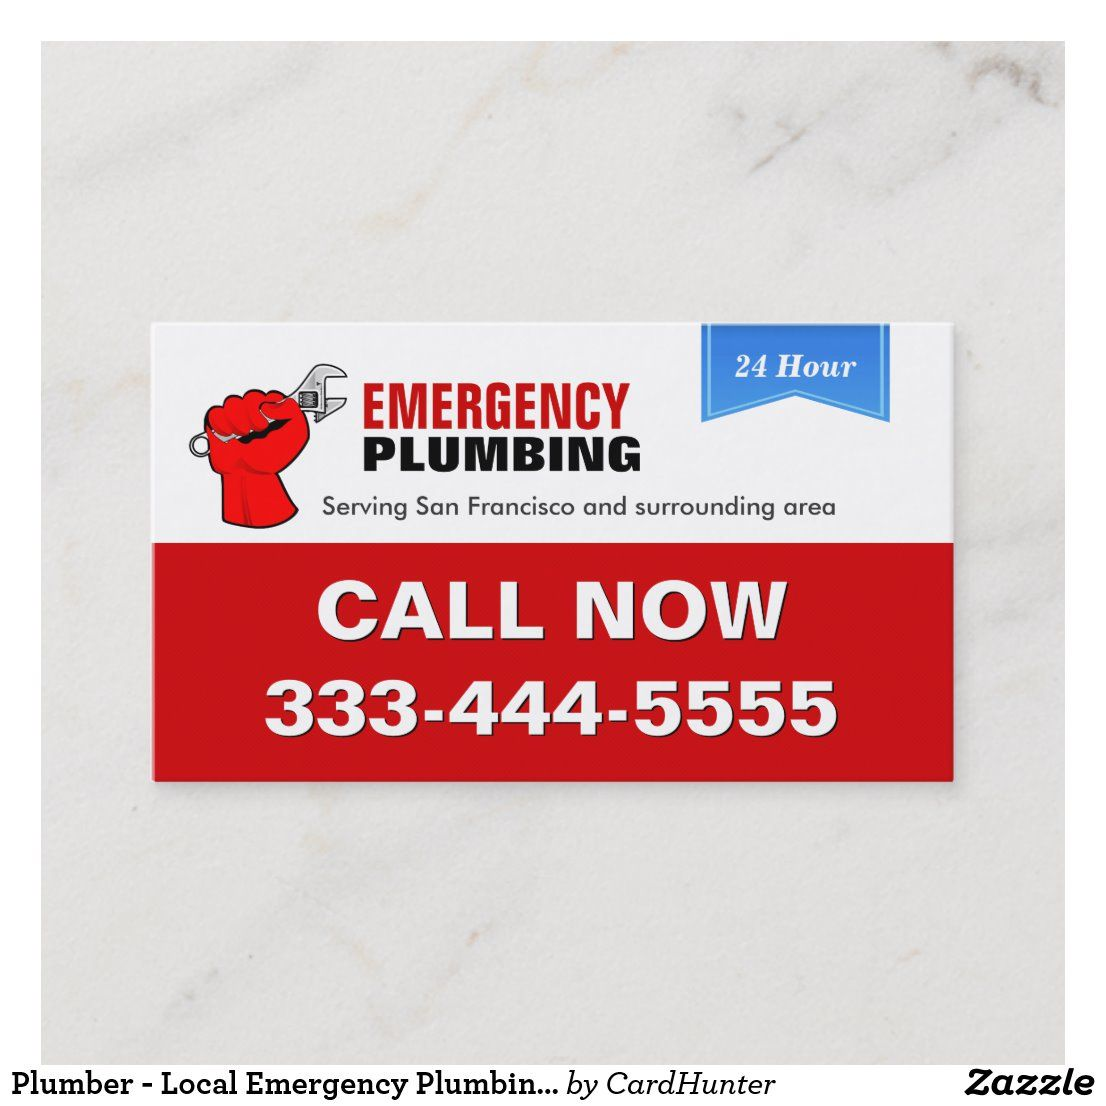 Plumber Local Emergency Plumbing Services Business Card Zazzle